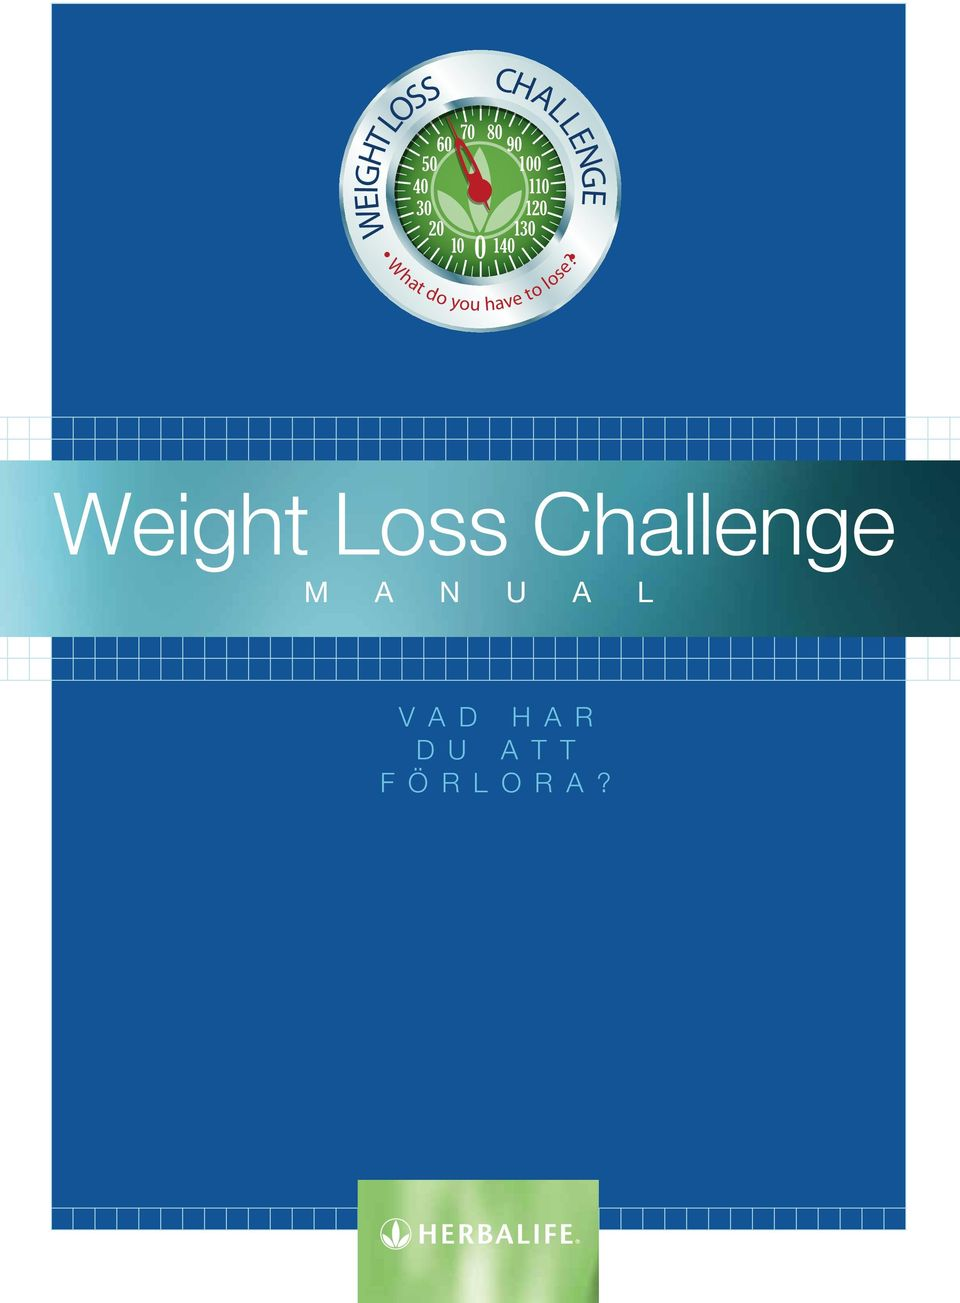 2% y 3% k 43% c 15% m 0% y 2% k 13% WEIGHT LOSS CHALLENGE What do you have to lose?